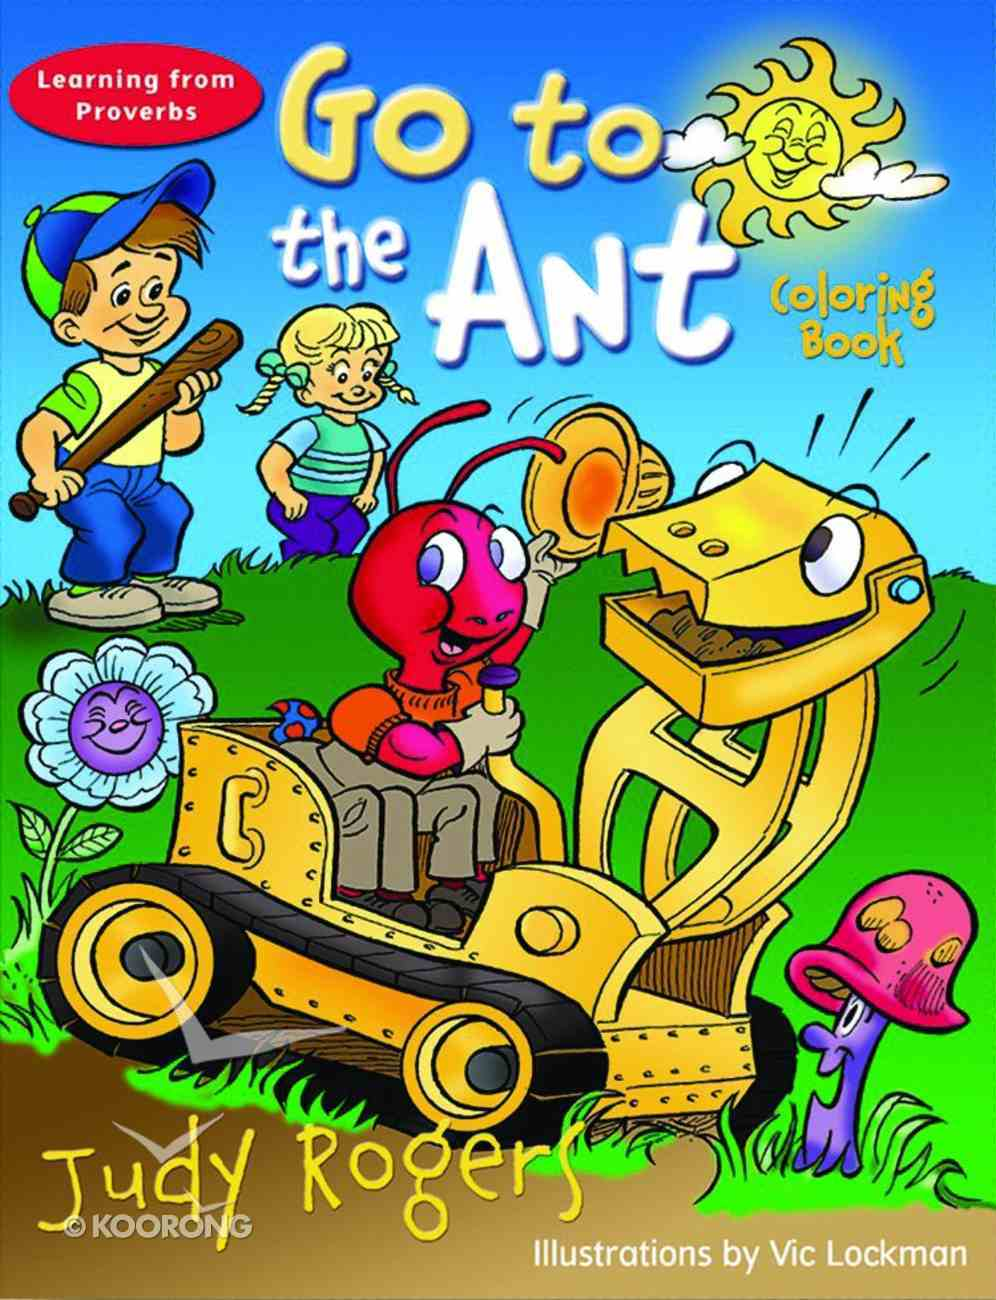 Go to the Ant (Colouring Book) Paperback